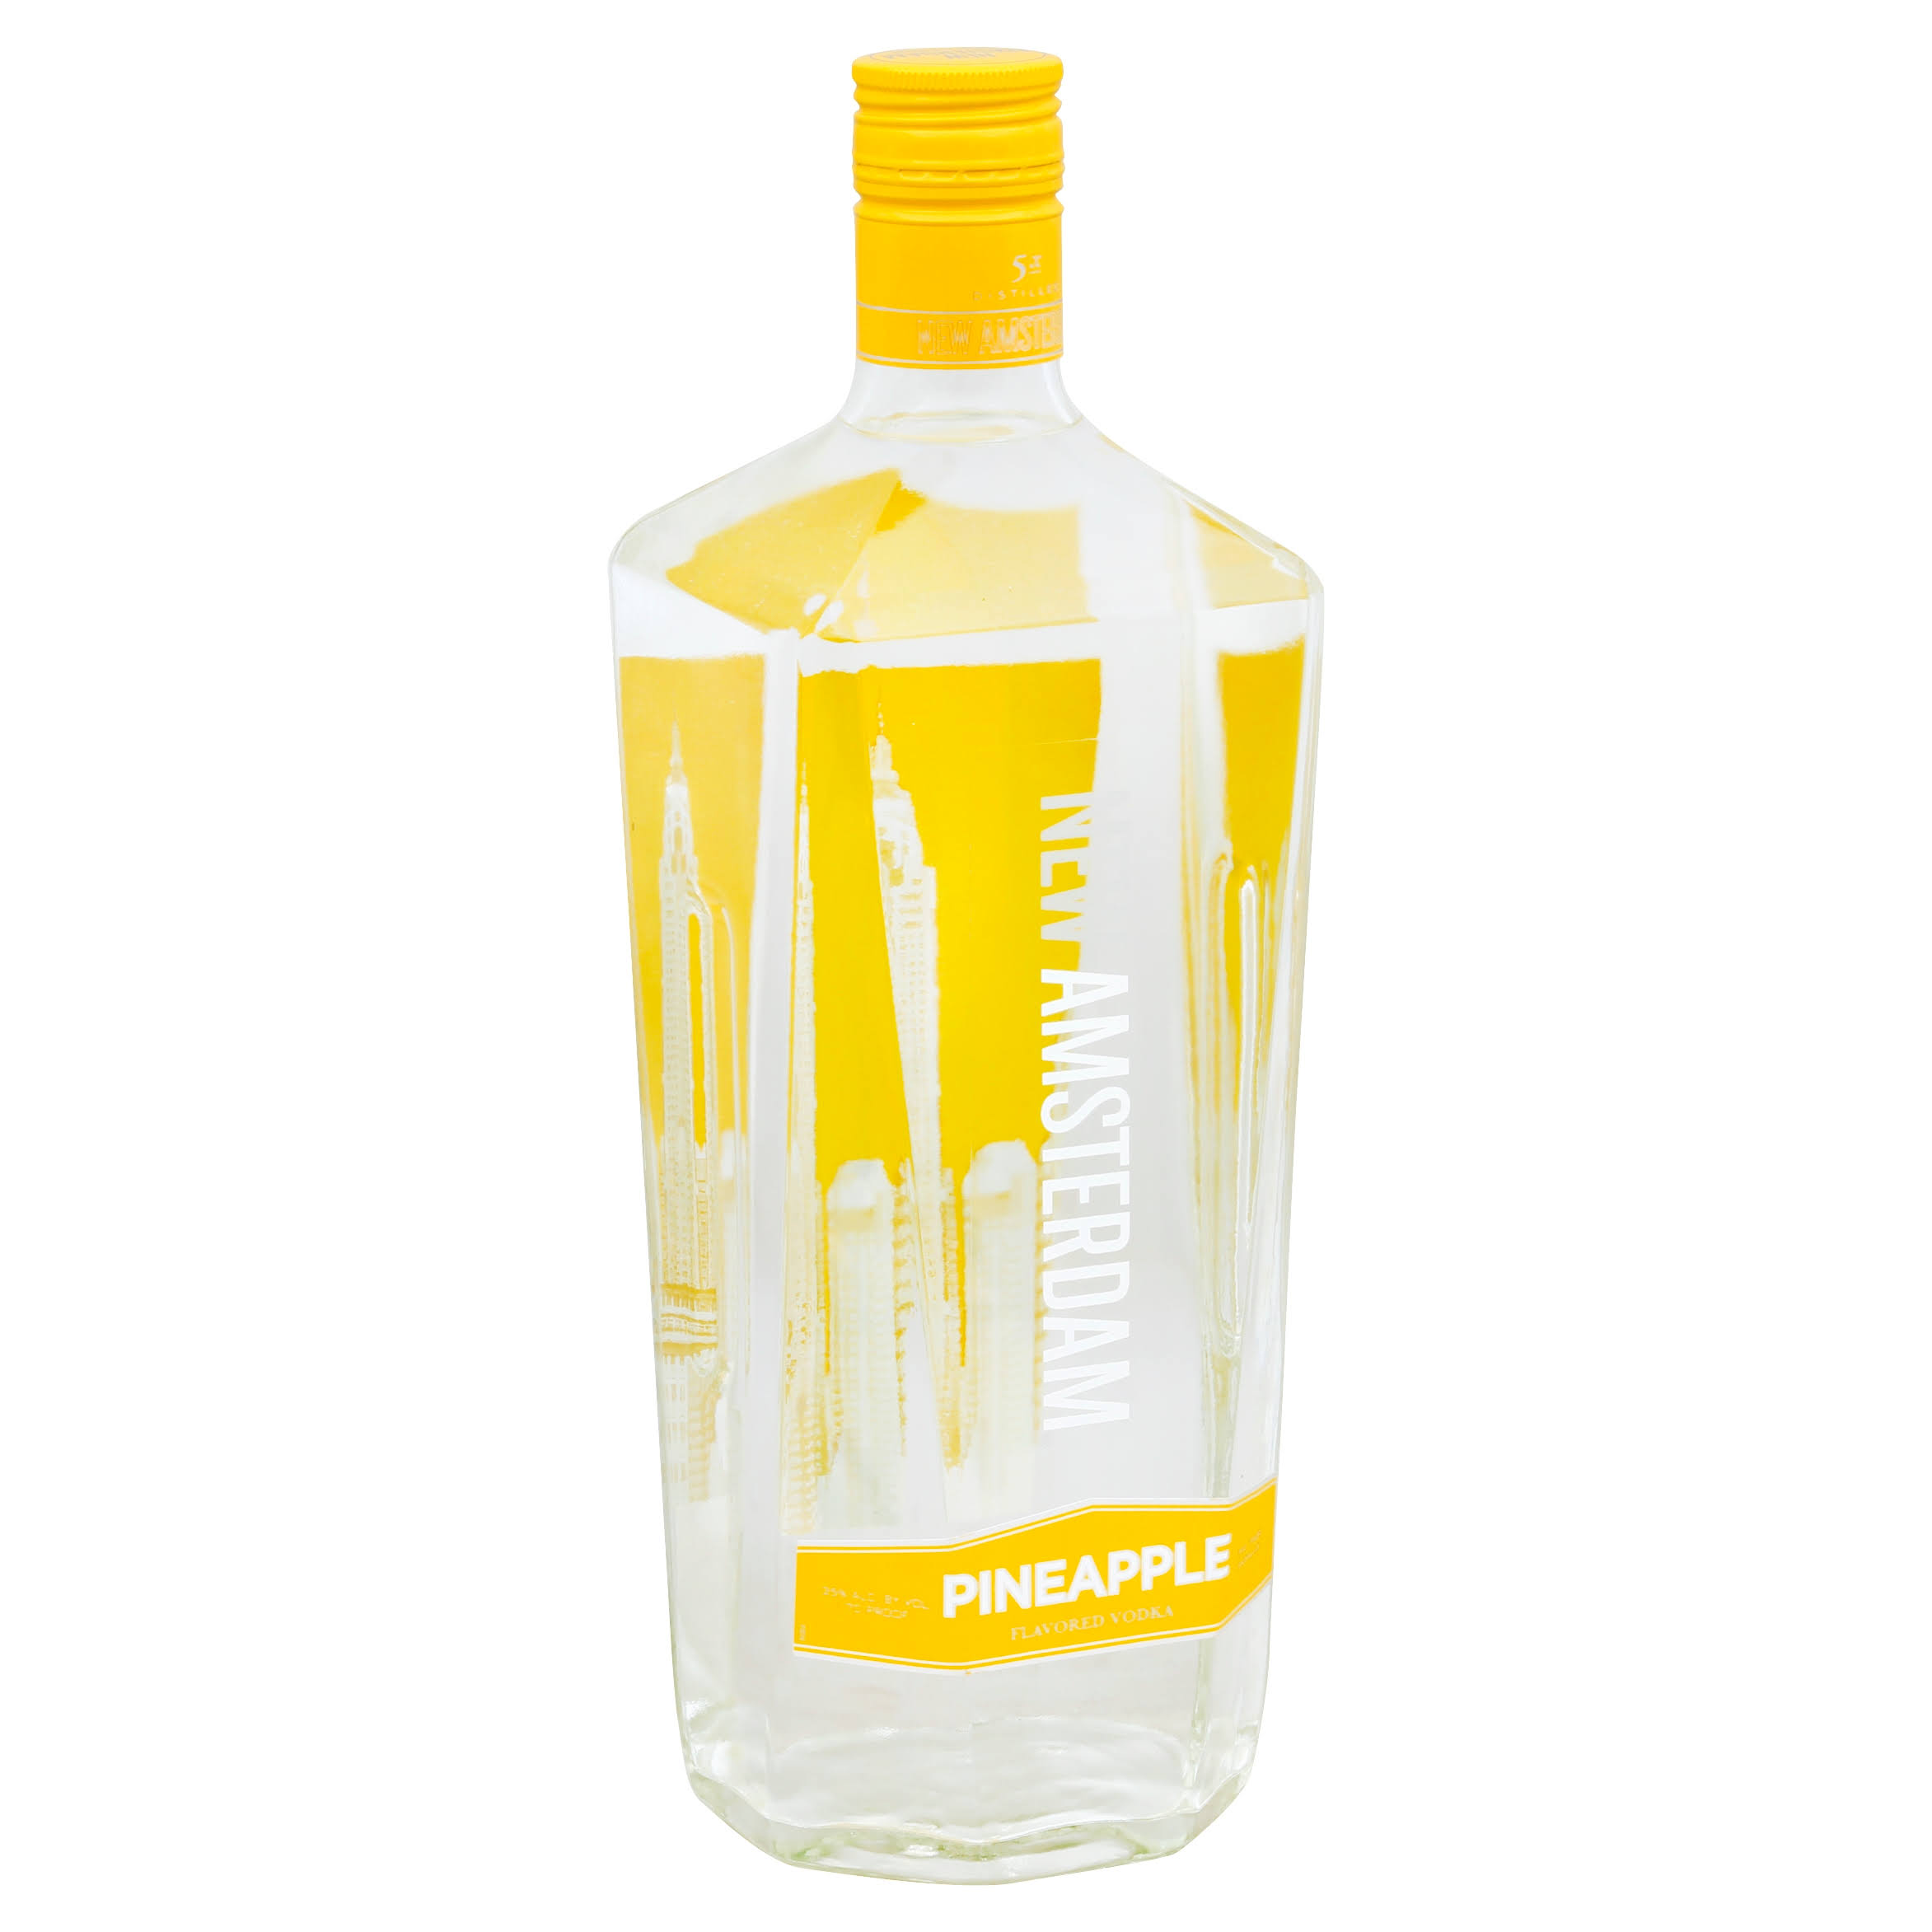 New Amsterdam Pineapple Vodka - 1.75 L bottle